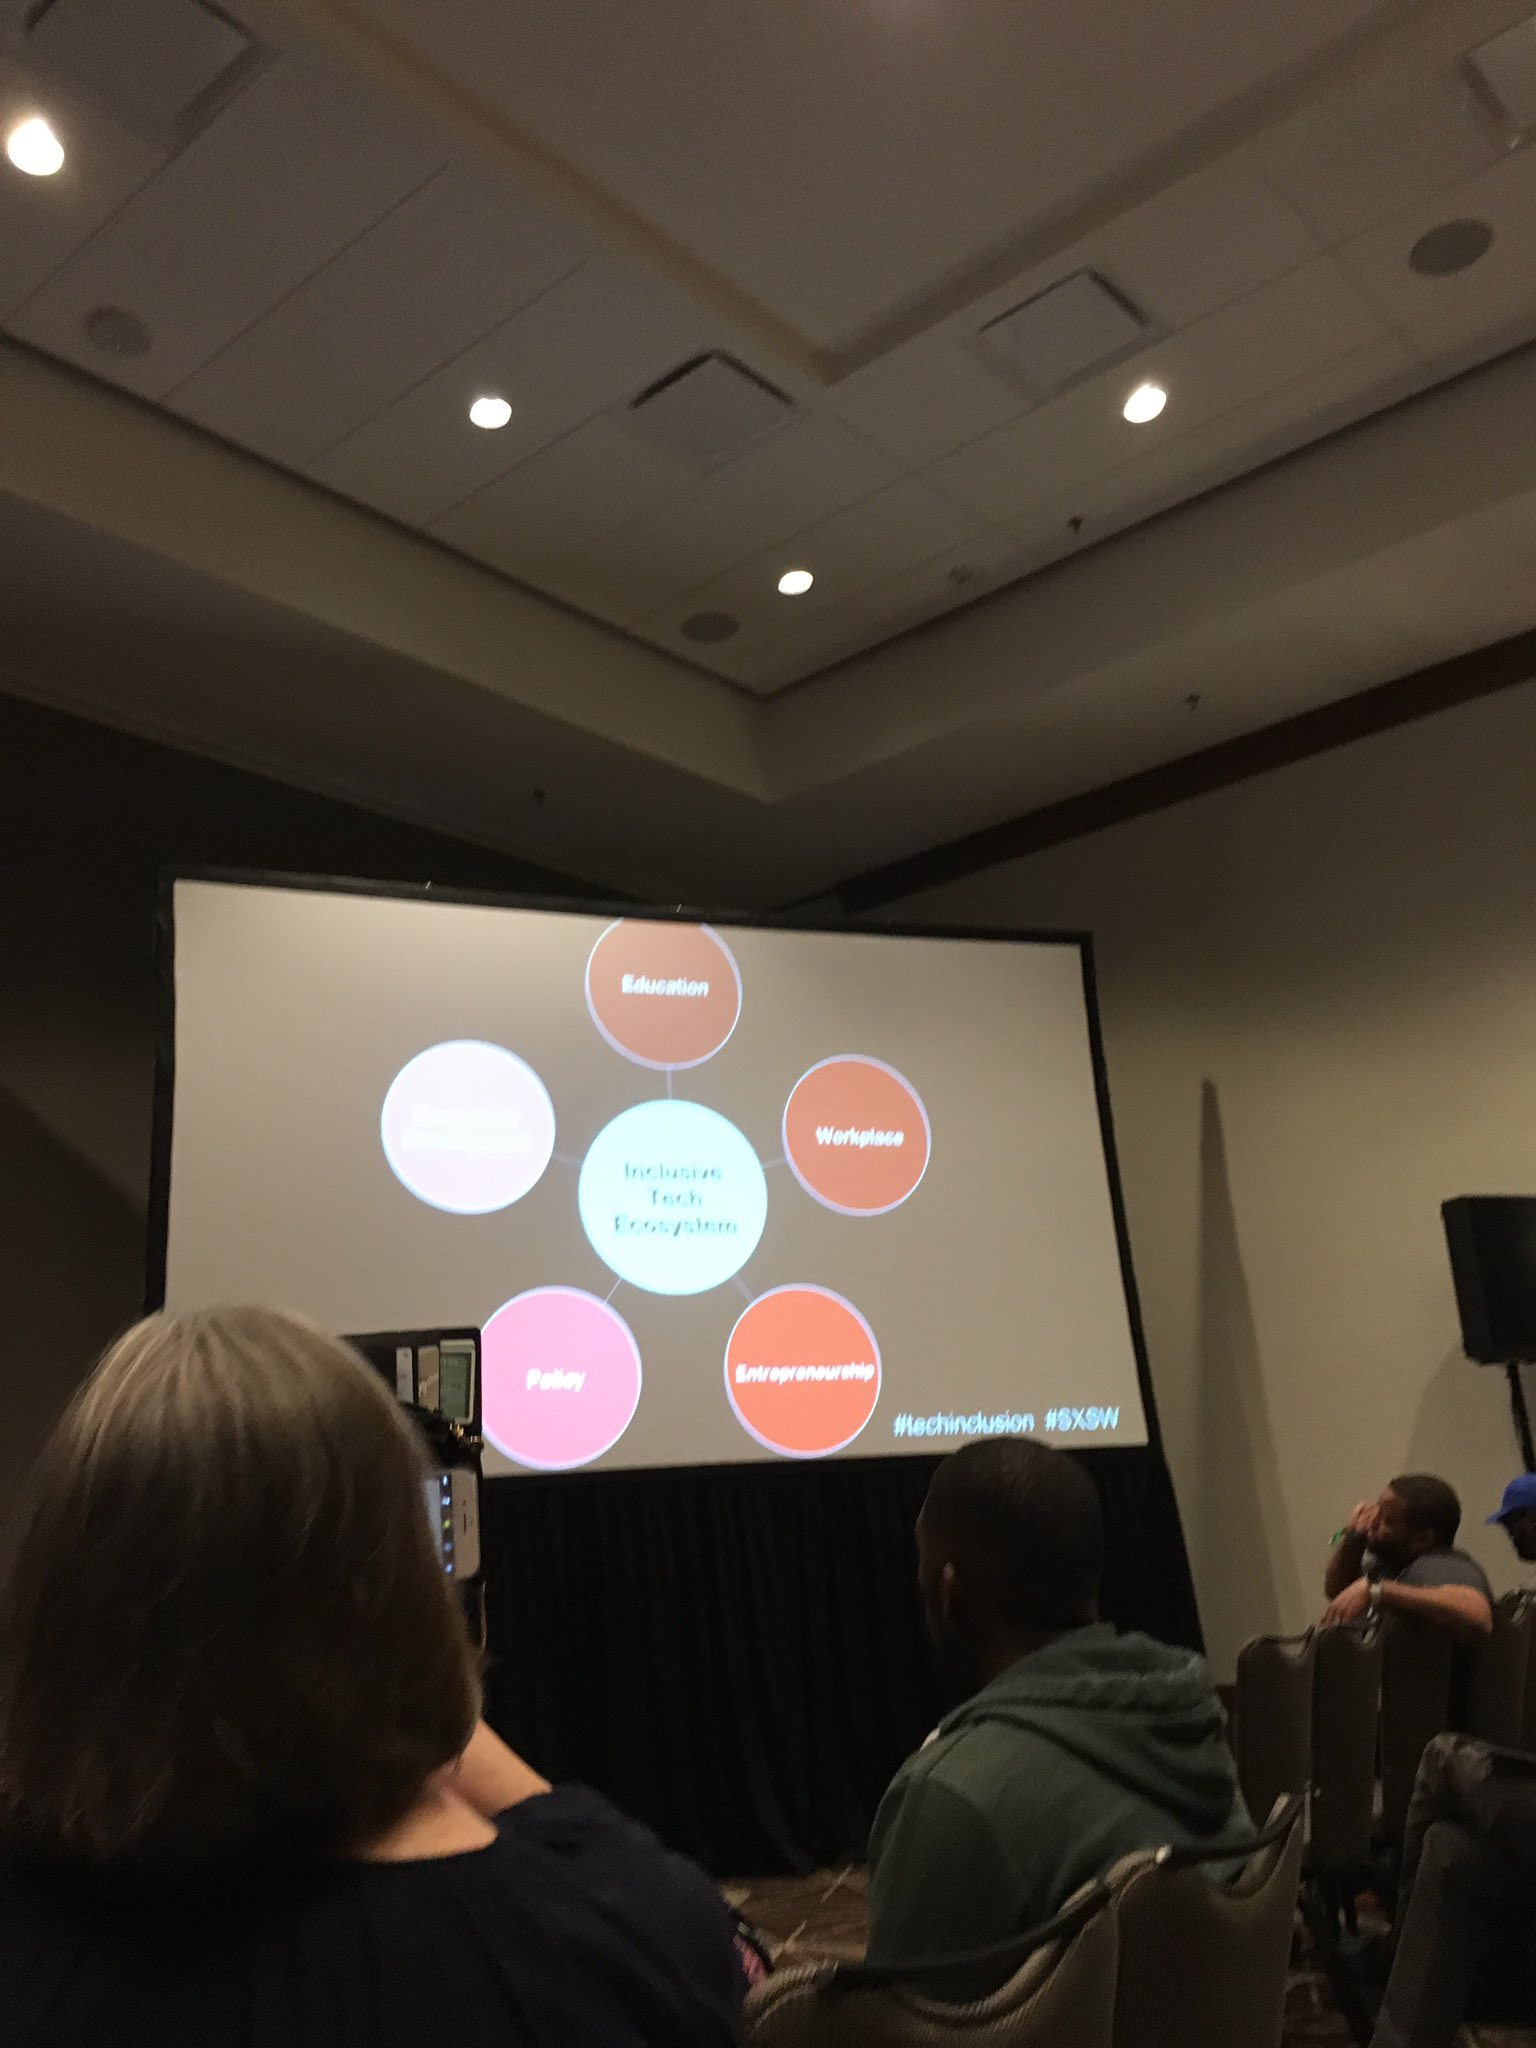 Education, workplace, entrepreneurship, policy, and ecosystem development all impact ability to be inclusive #techinclusion #sxsw https://t.co/WVDBpRWD7B